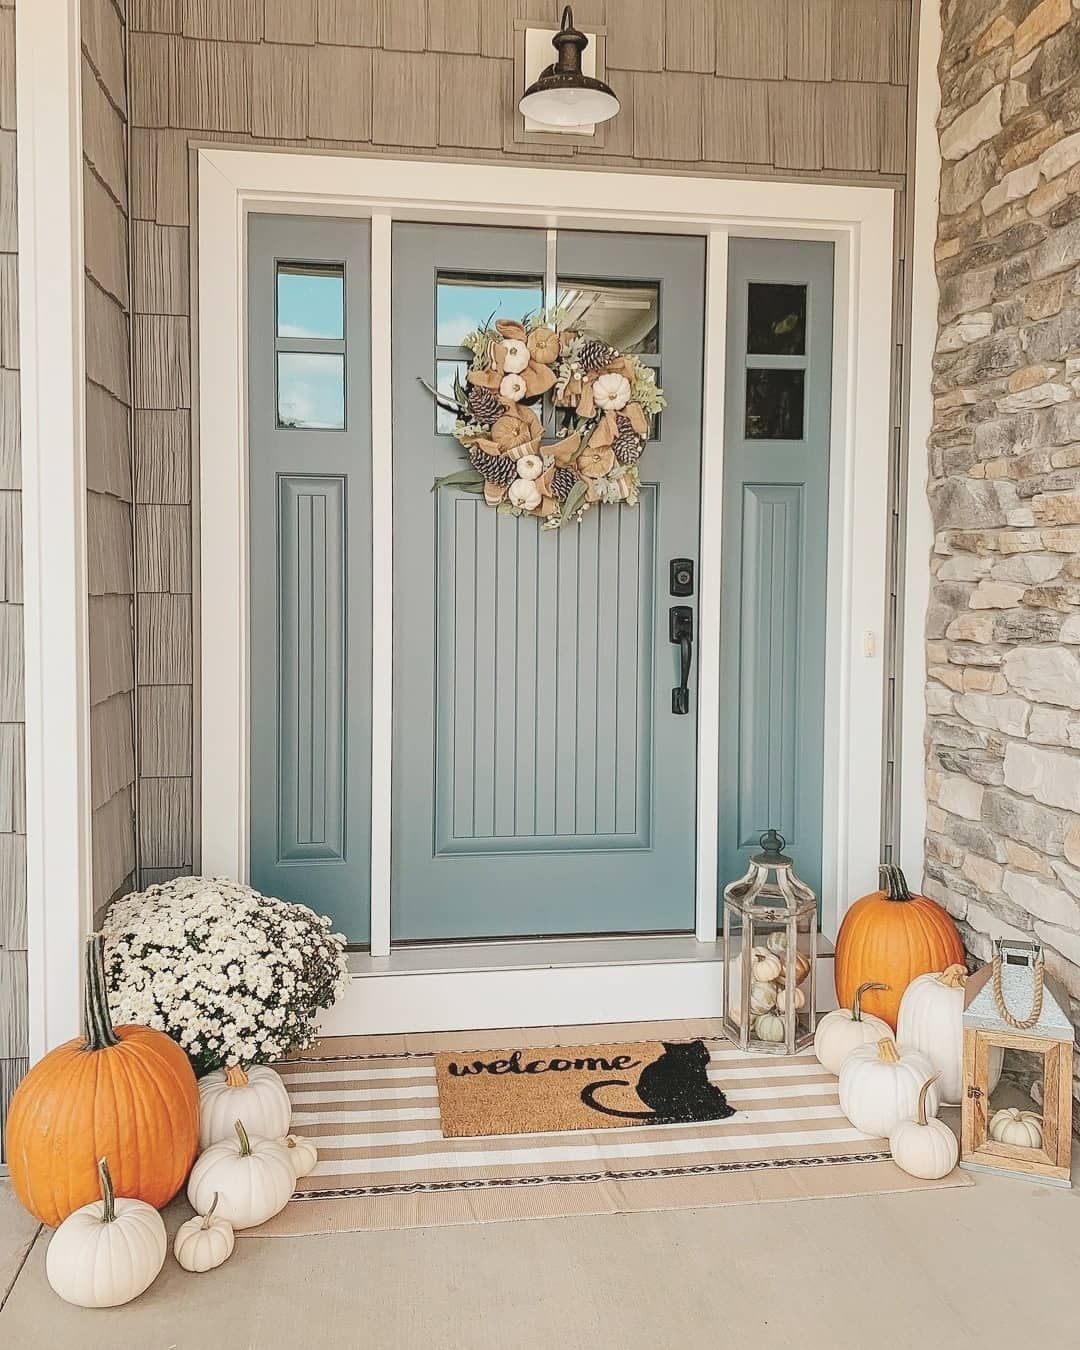 Great fall front door inspiration ???????????????? How do like idea? #Repost @liketoknow.it.home #walkwaystofrontdoor